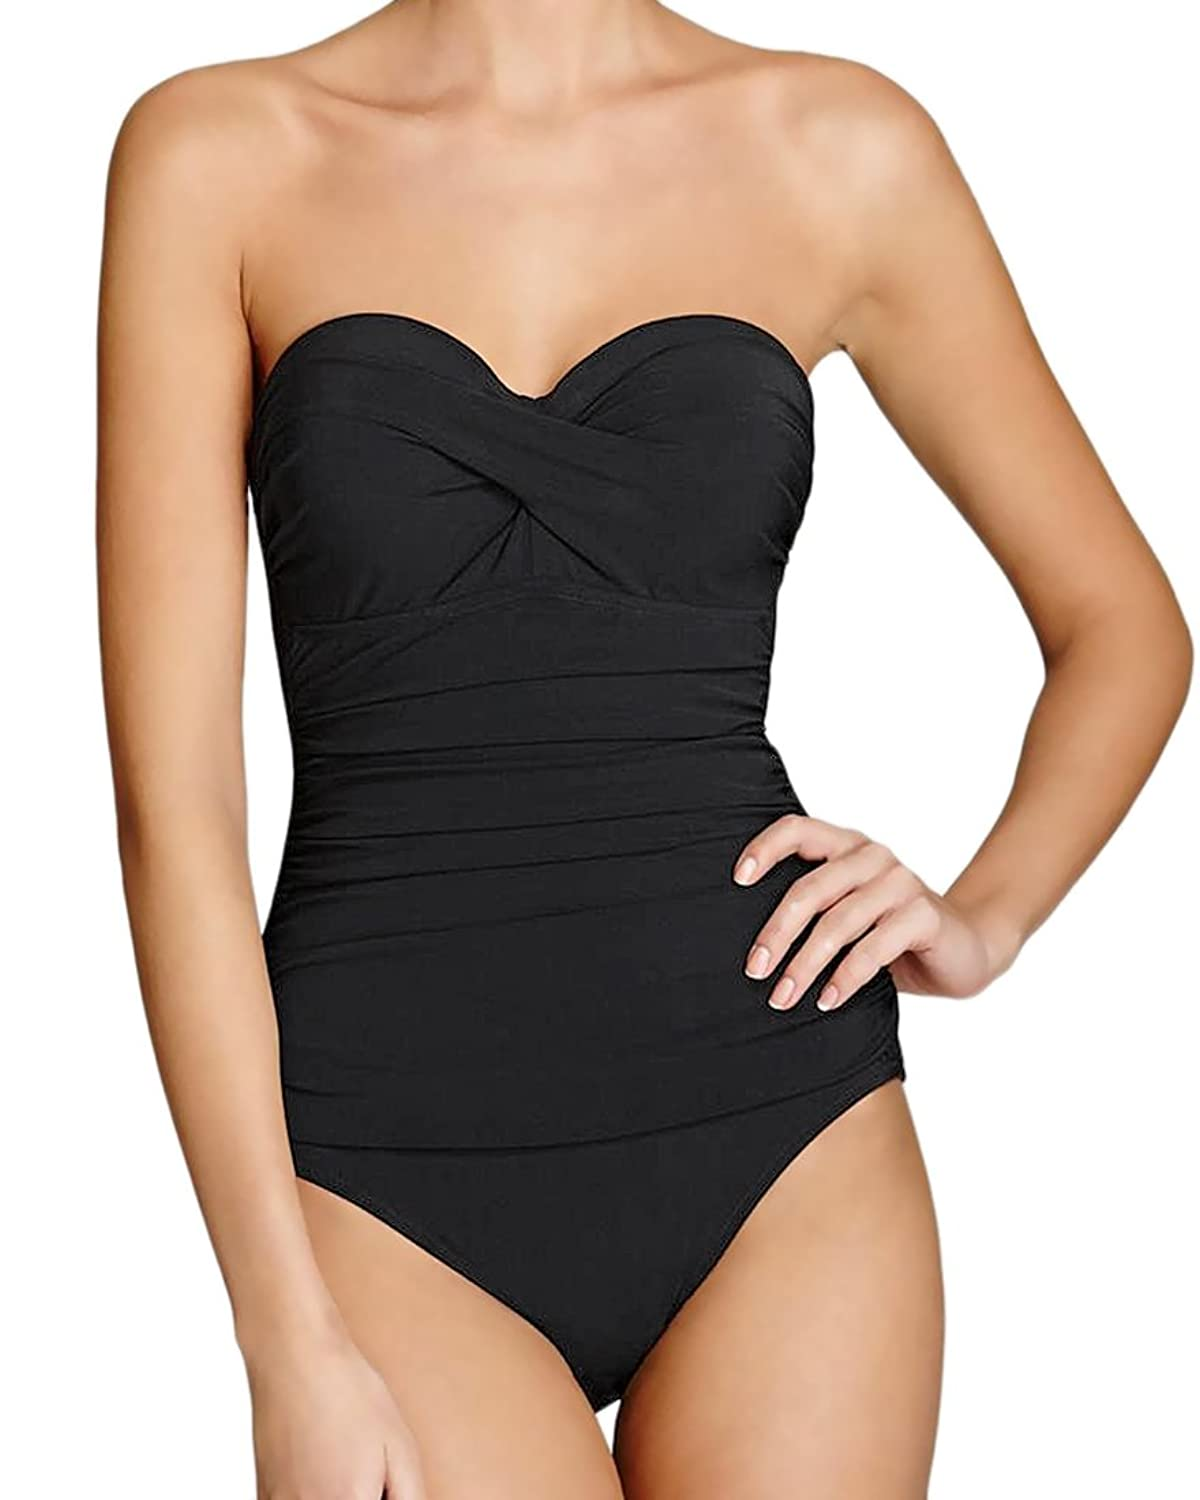 Profile by Gottex Black Tutti Frutti Twist Front Bandeau D-Cup Underwire One Piece Swimsuit